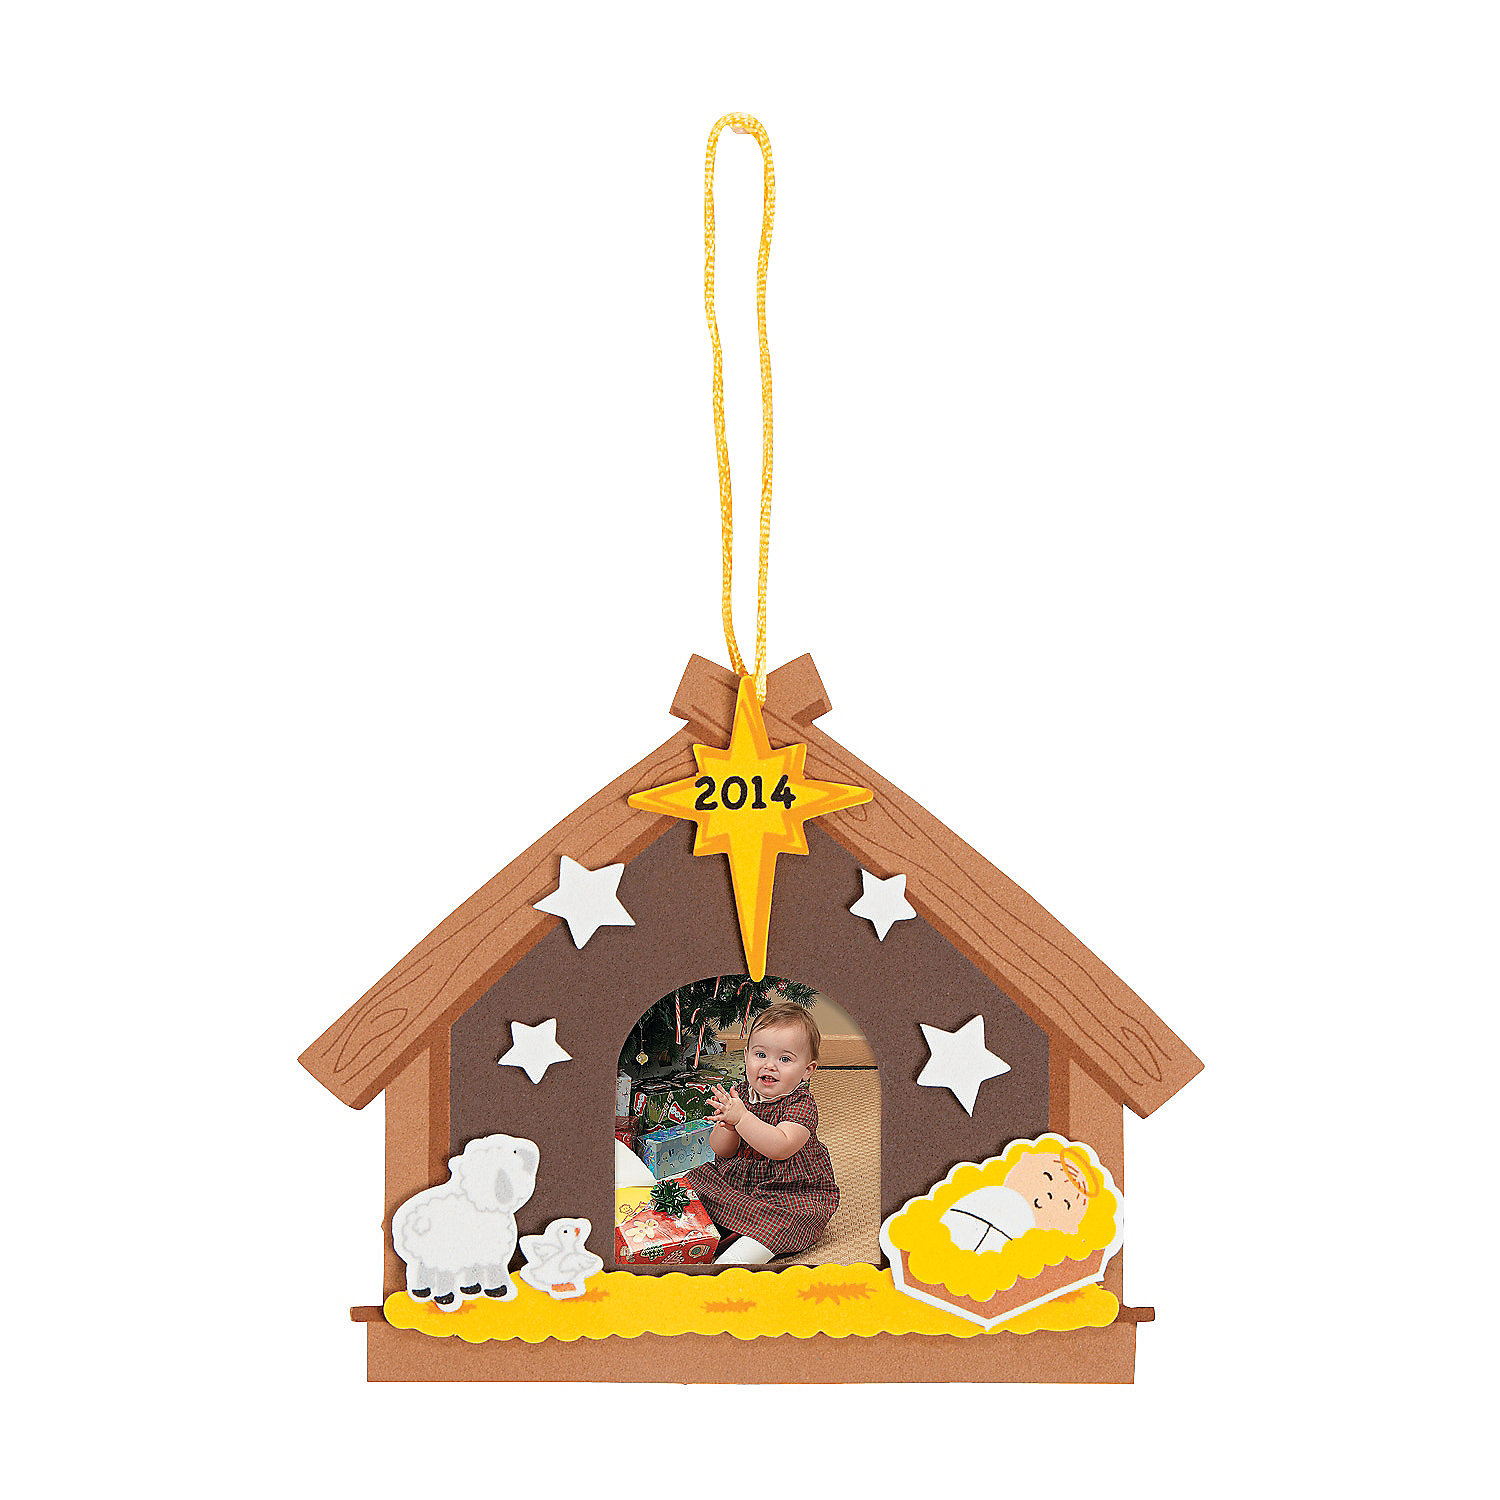 2014 2015 nativity christmas ornament picture frame craft for Photo frame ornament craft